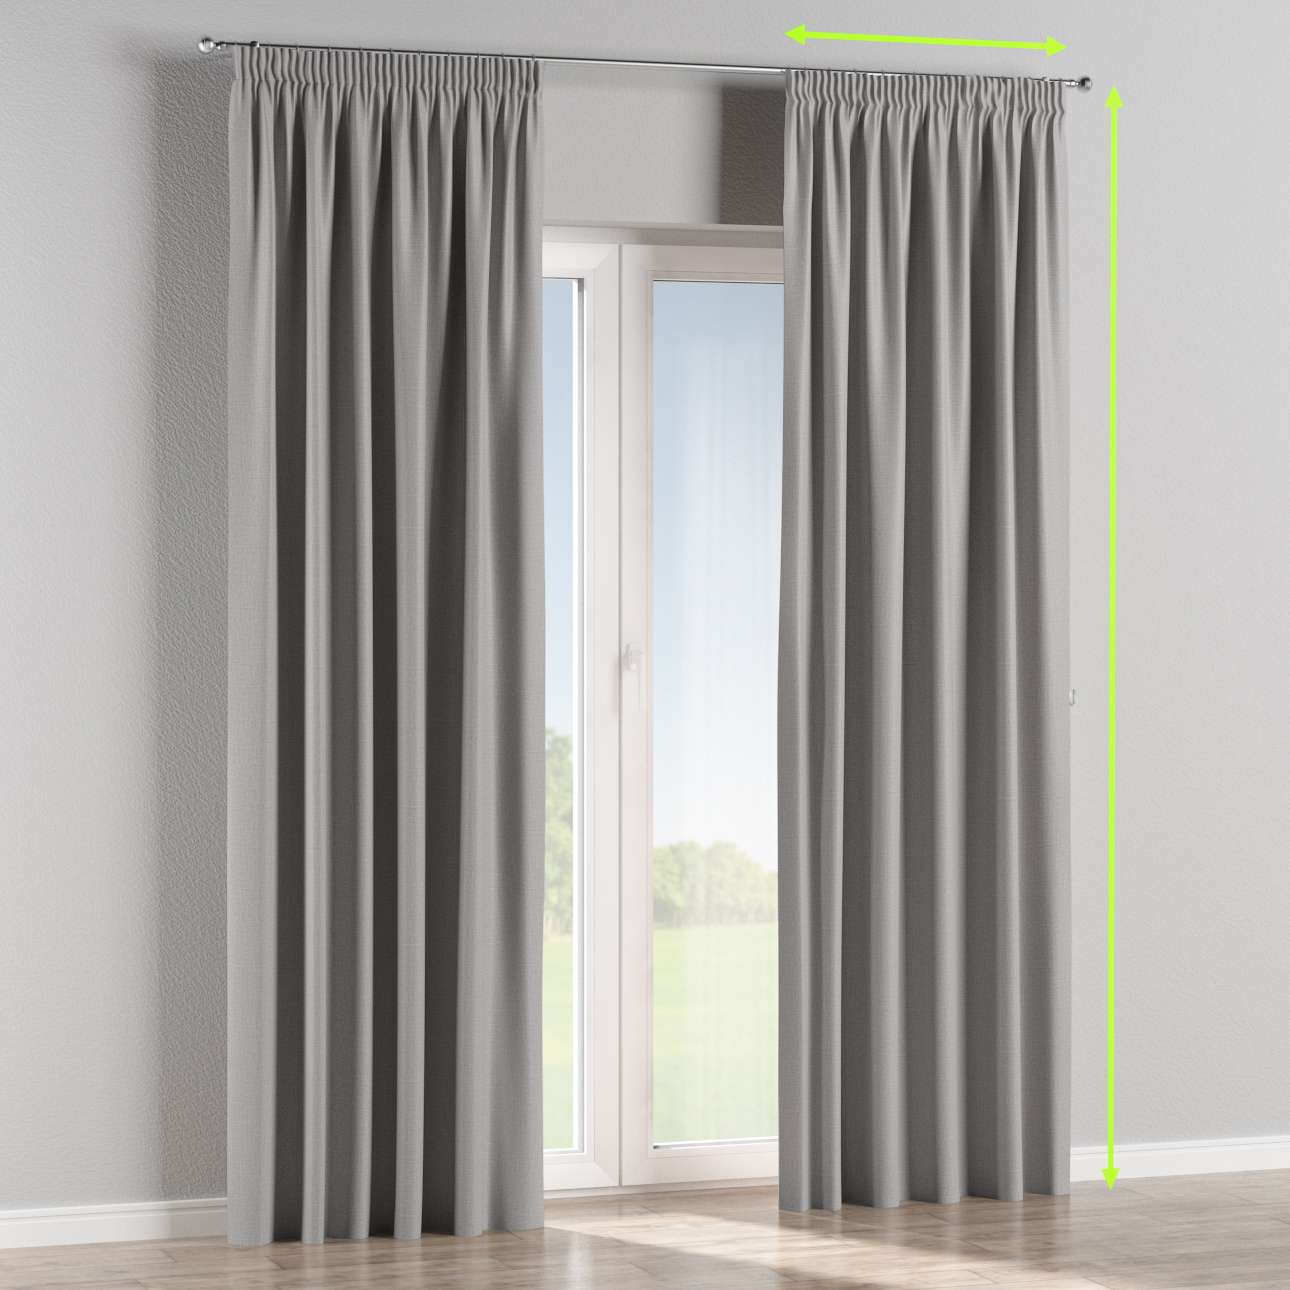 Blackout pencil pleat curtains in collection Blackout, fabric: 269-64